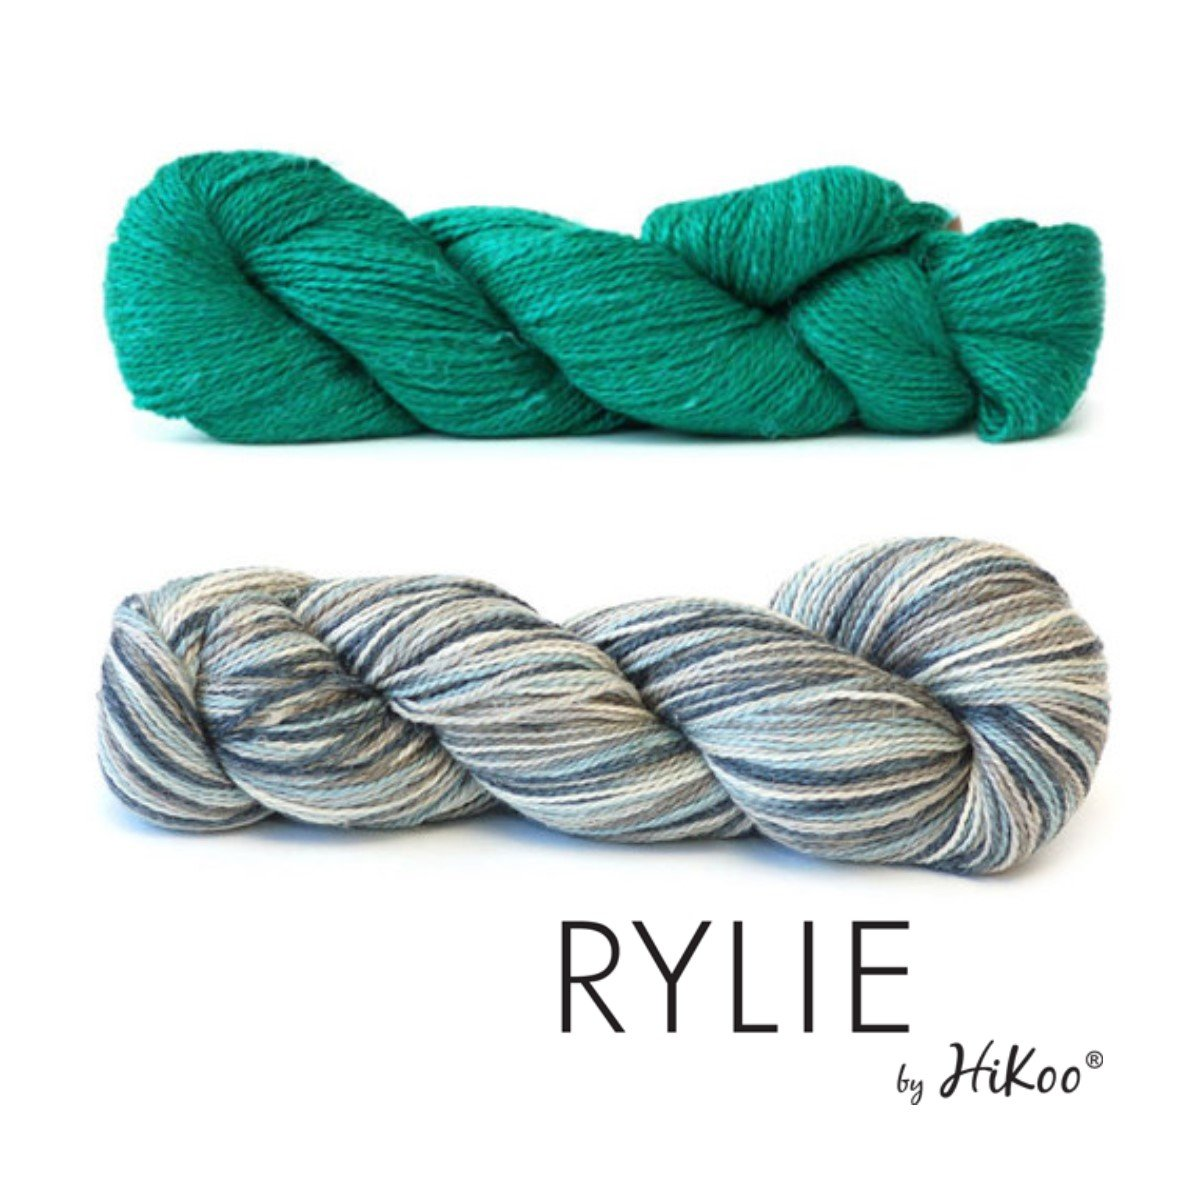 Rylie - Solids & Handpainted